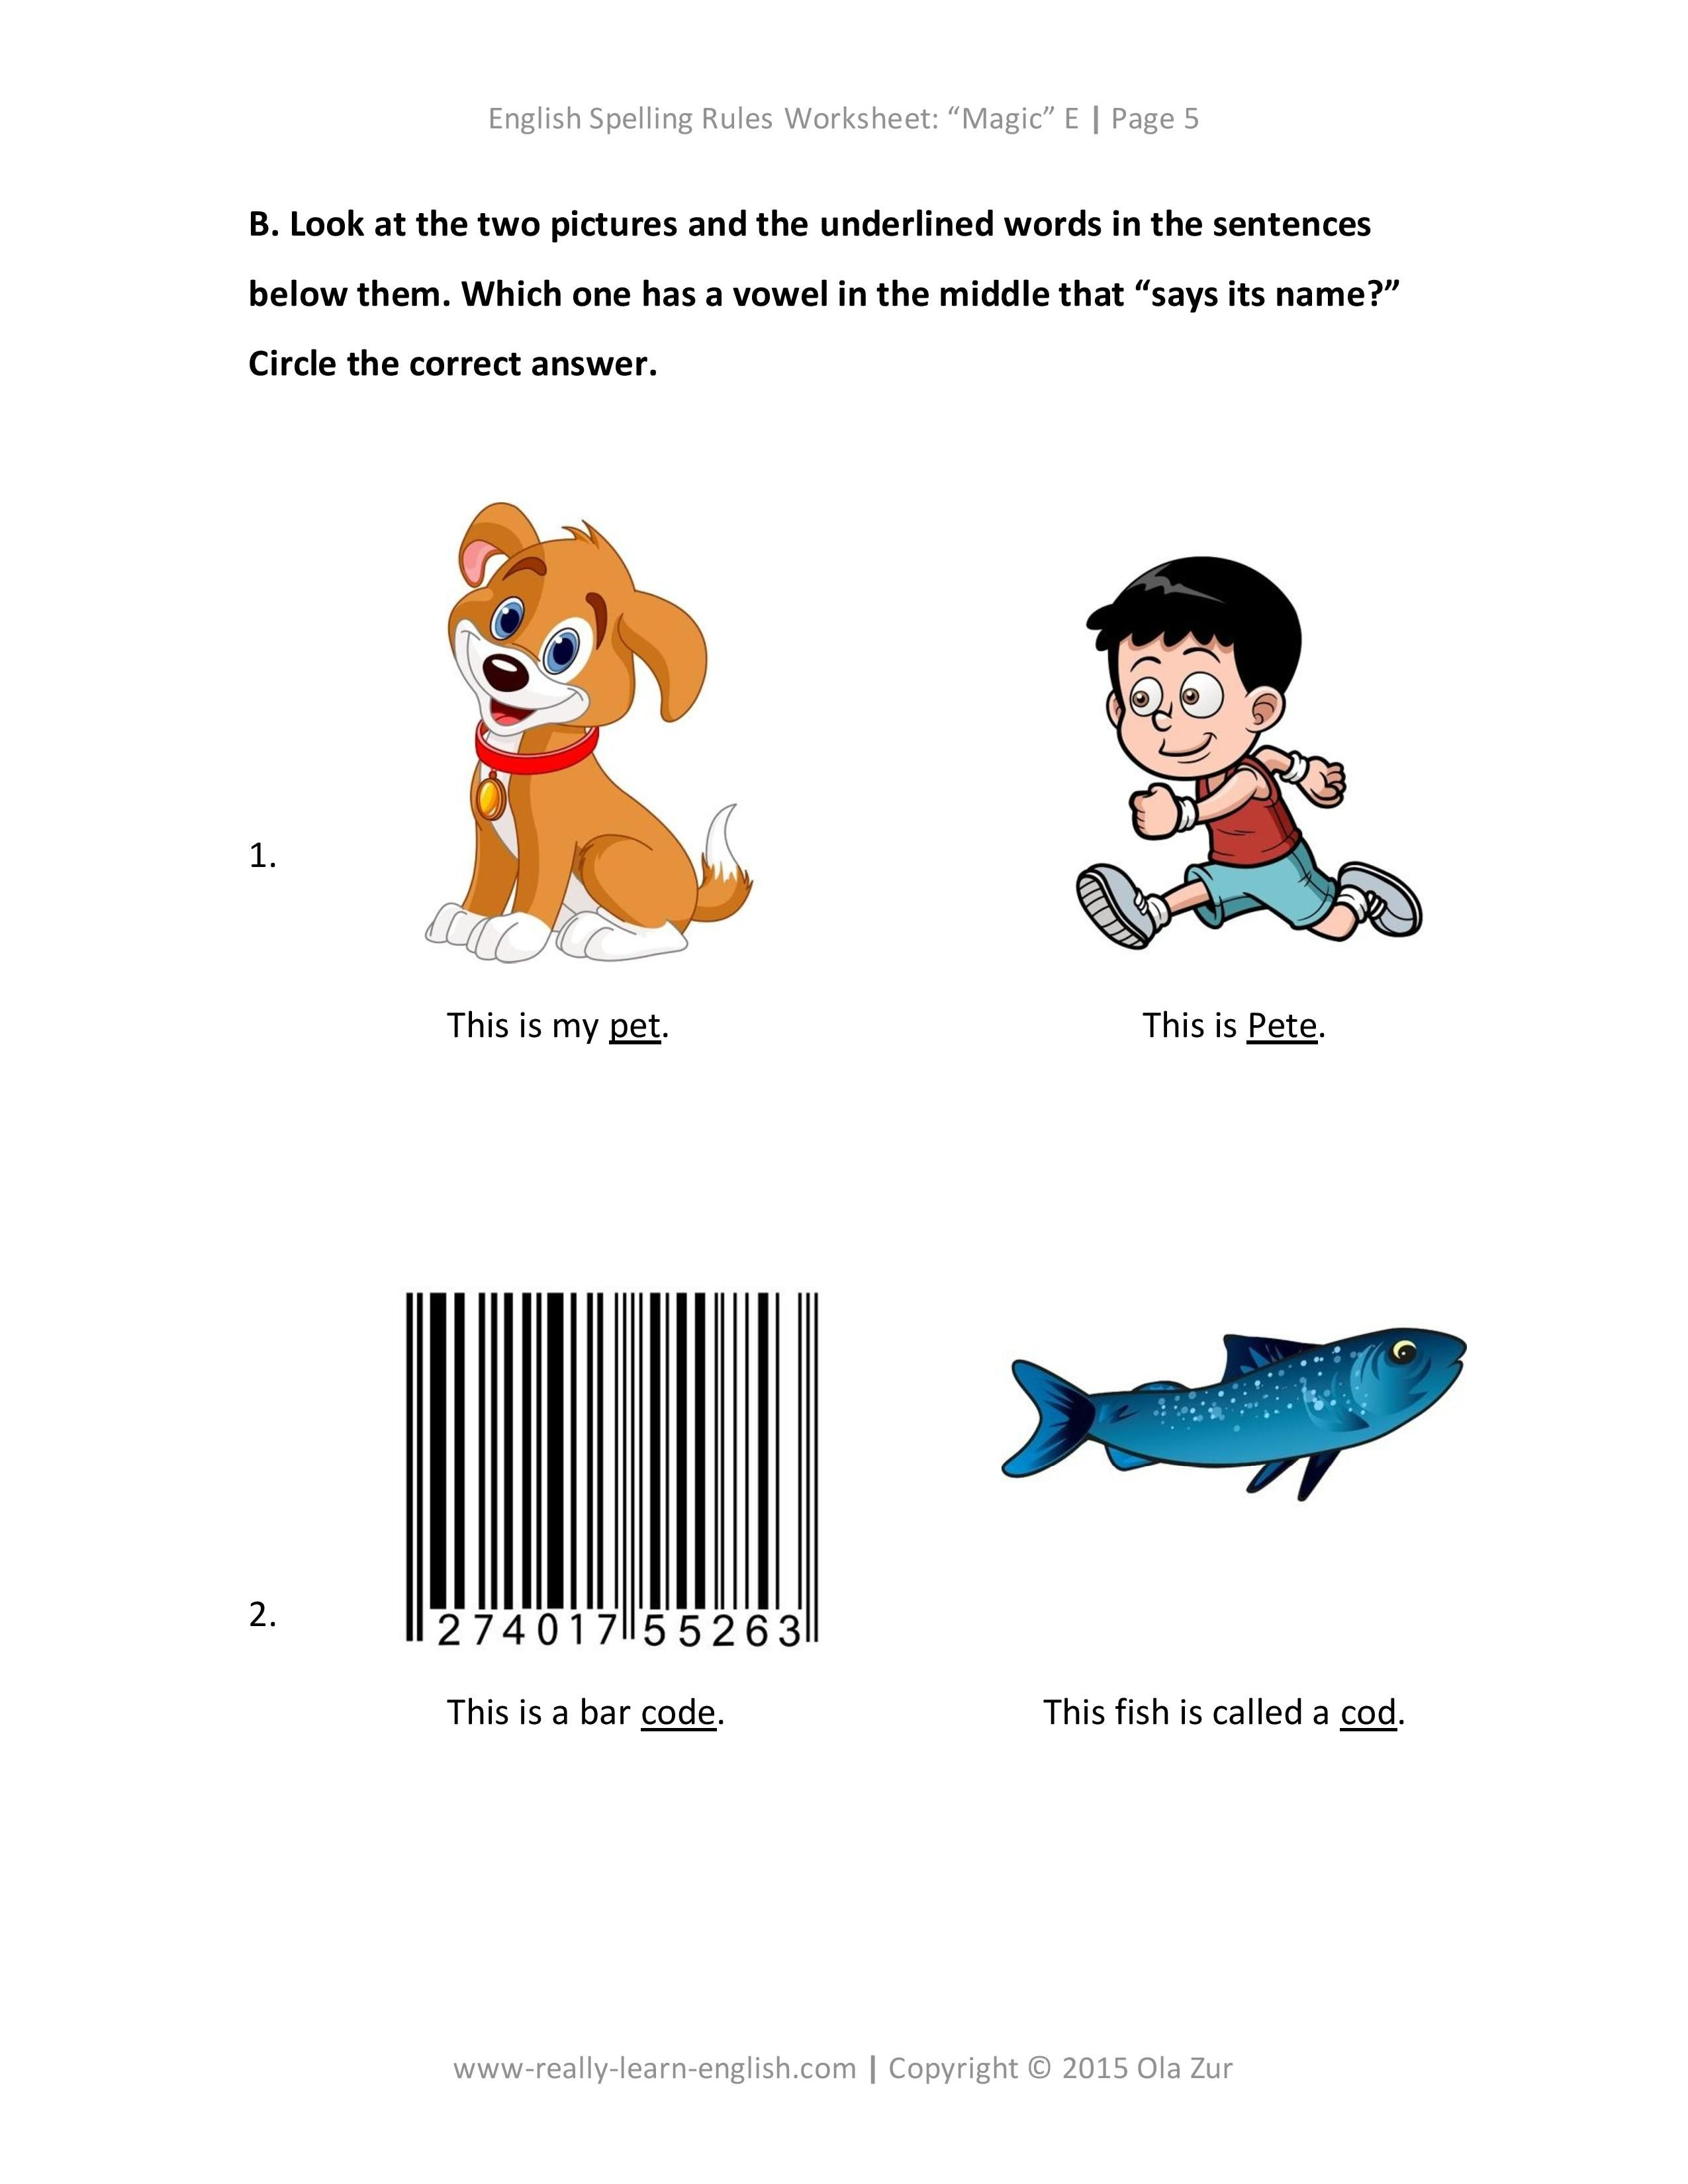 The Complete List Of English Spelling Rules Lesson 1 The